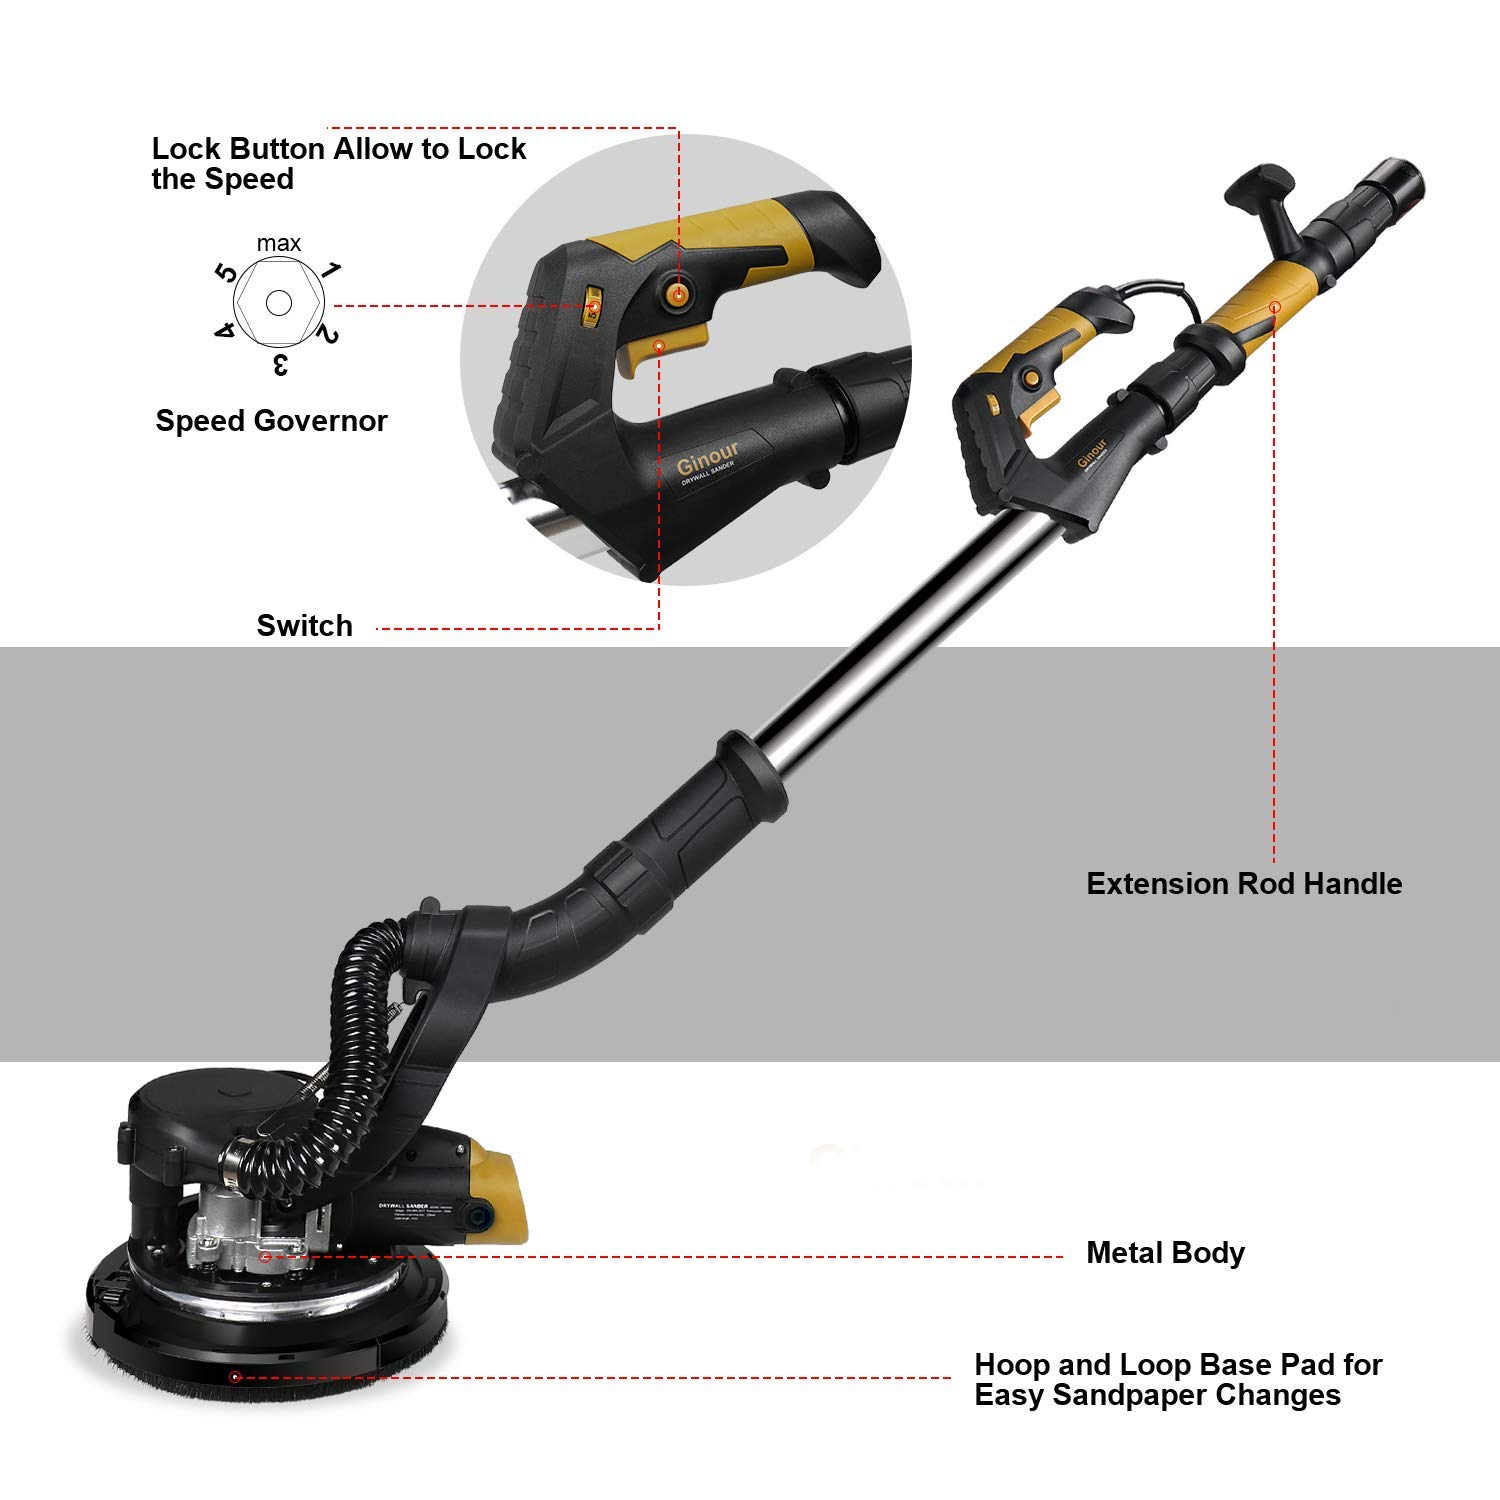 Long Dust Hose Extendable Handle Ginour Lightweight Electric Drywall Sander With Vacuum Attachment Storage Bag 6 Sanding Discs 2 LED Light /& Variable Speed